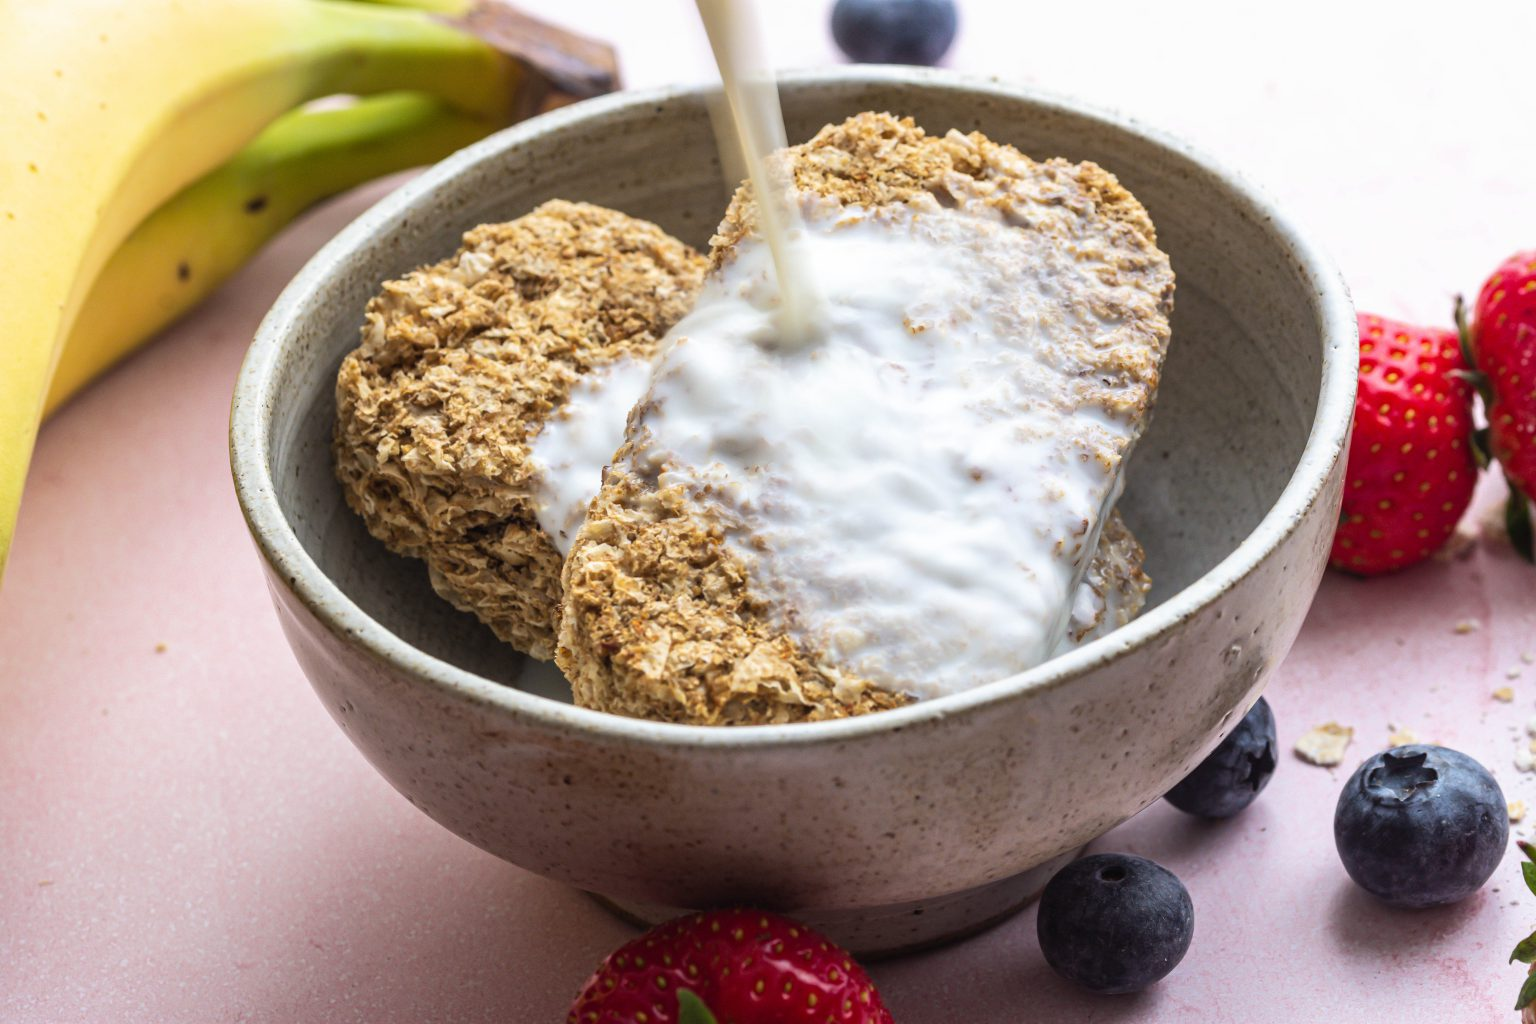 Milk being poured onto Weetabix in a bowl